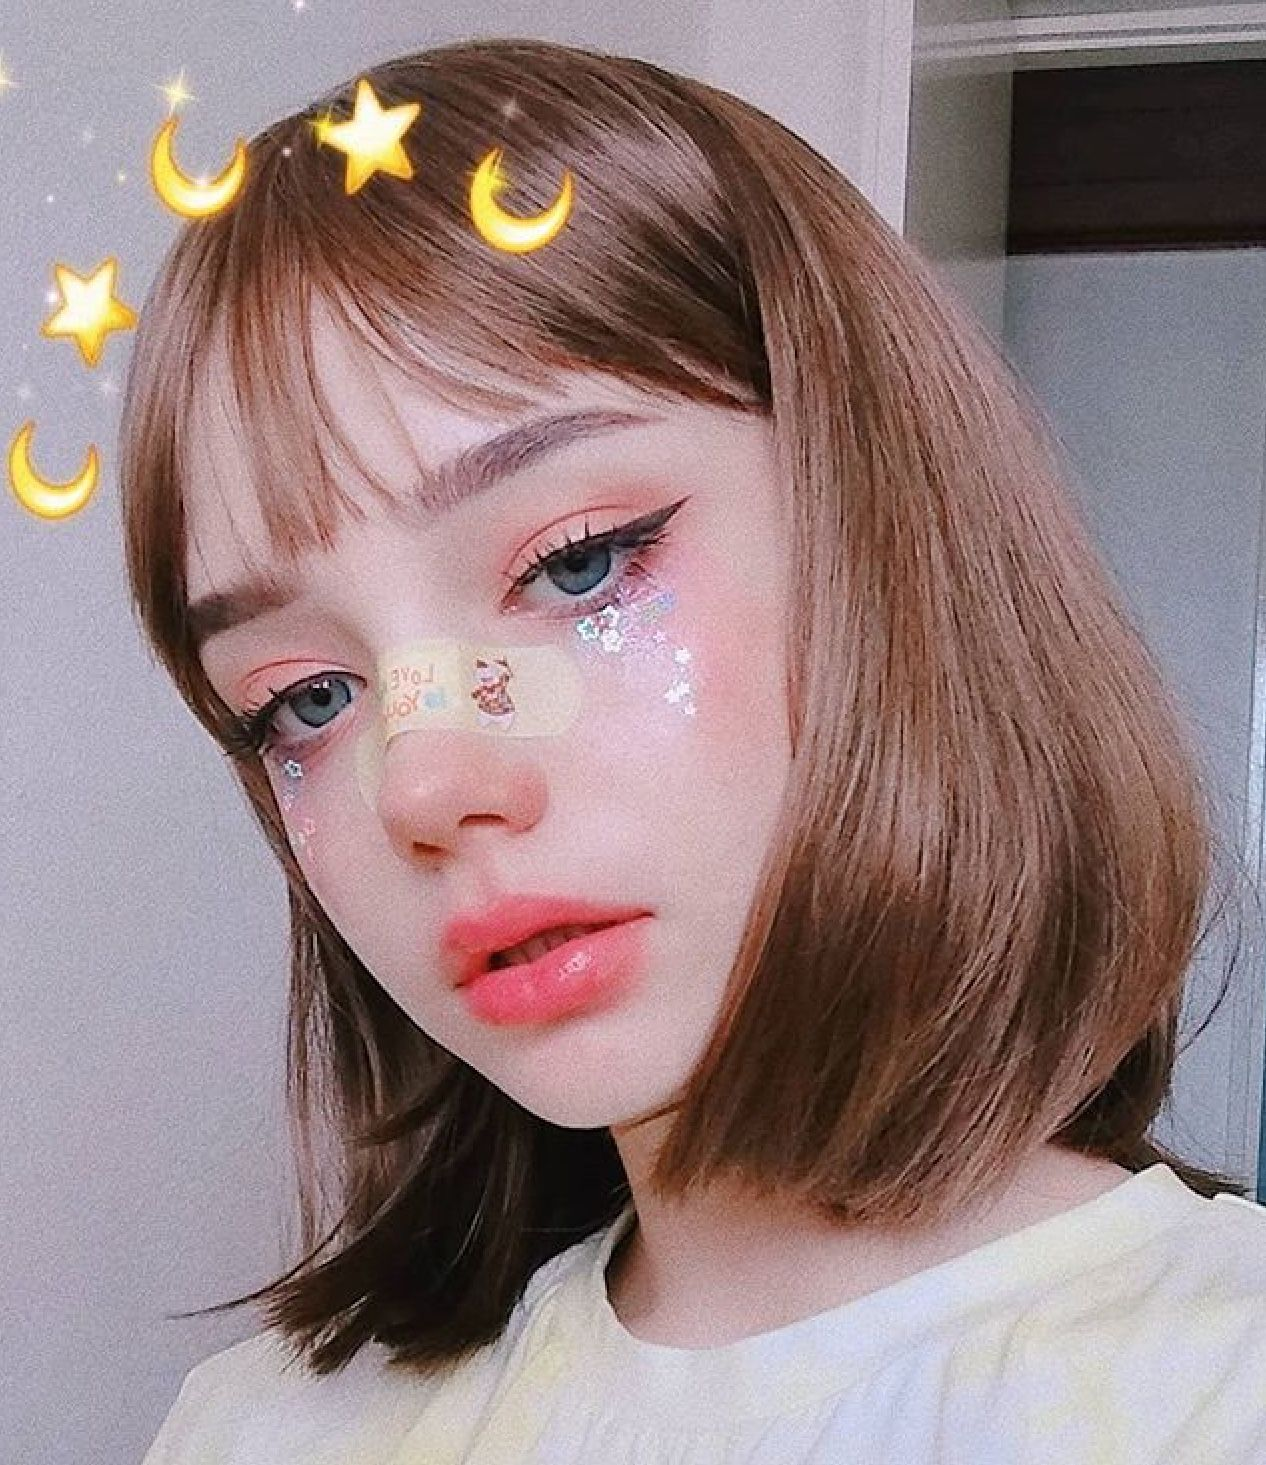 Pin by saja on cozyinspo pinterest ulzzang makeup and girls